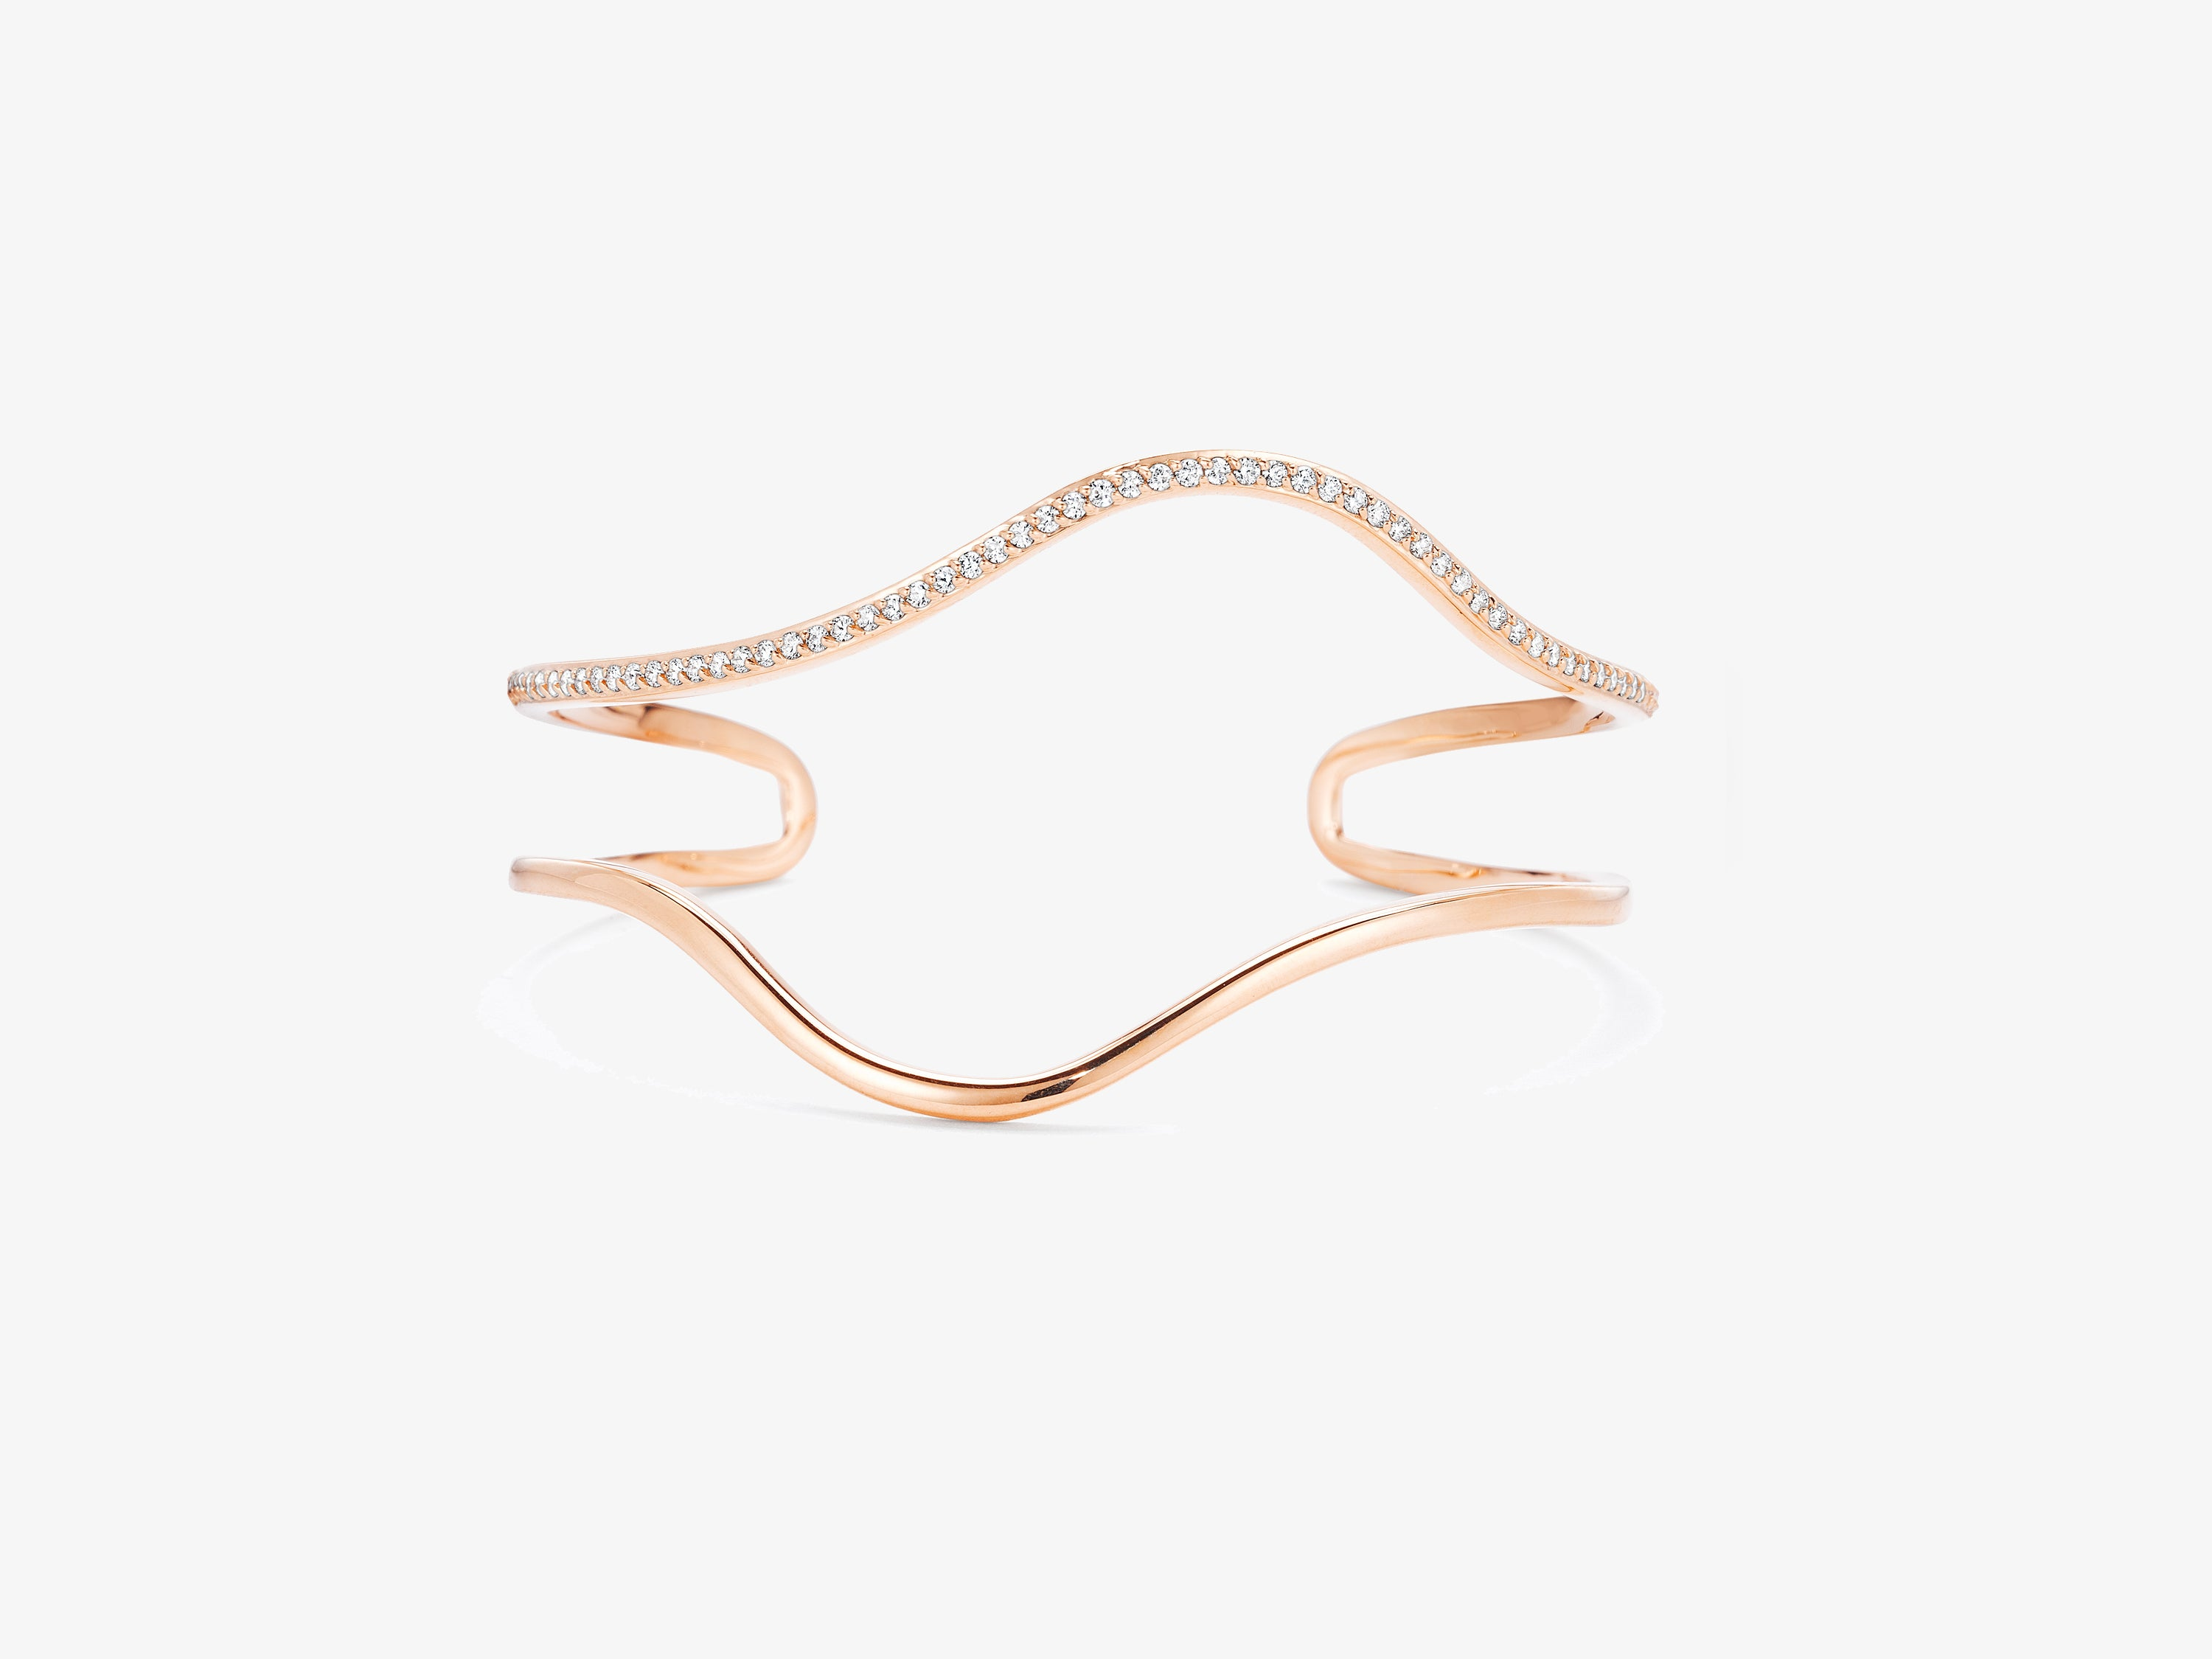 Flou Open Wide Wavy Cuff with One Row of Diamond Pave